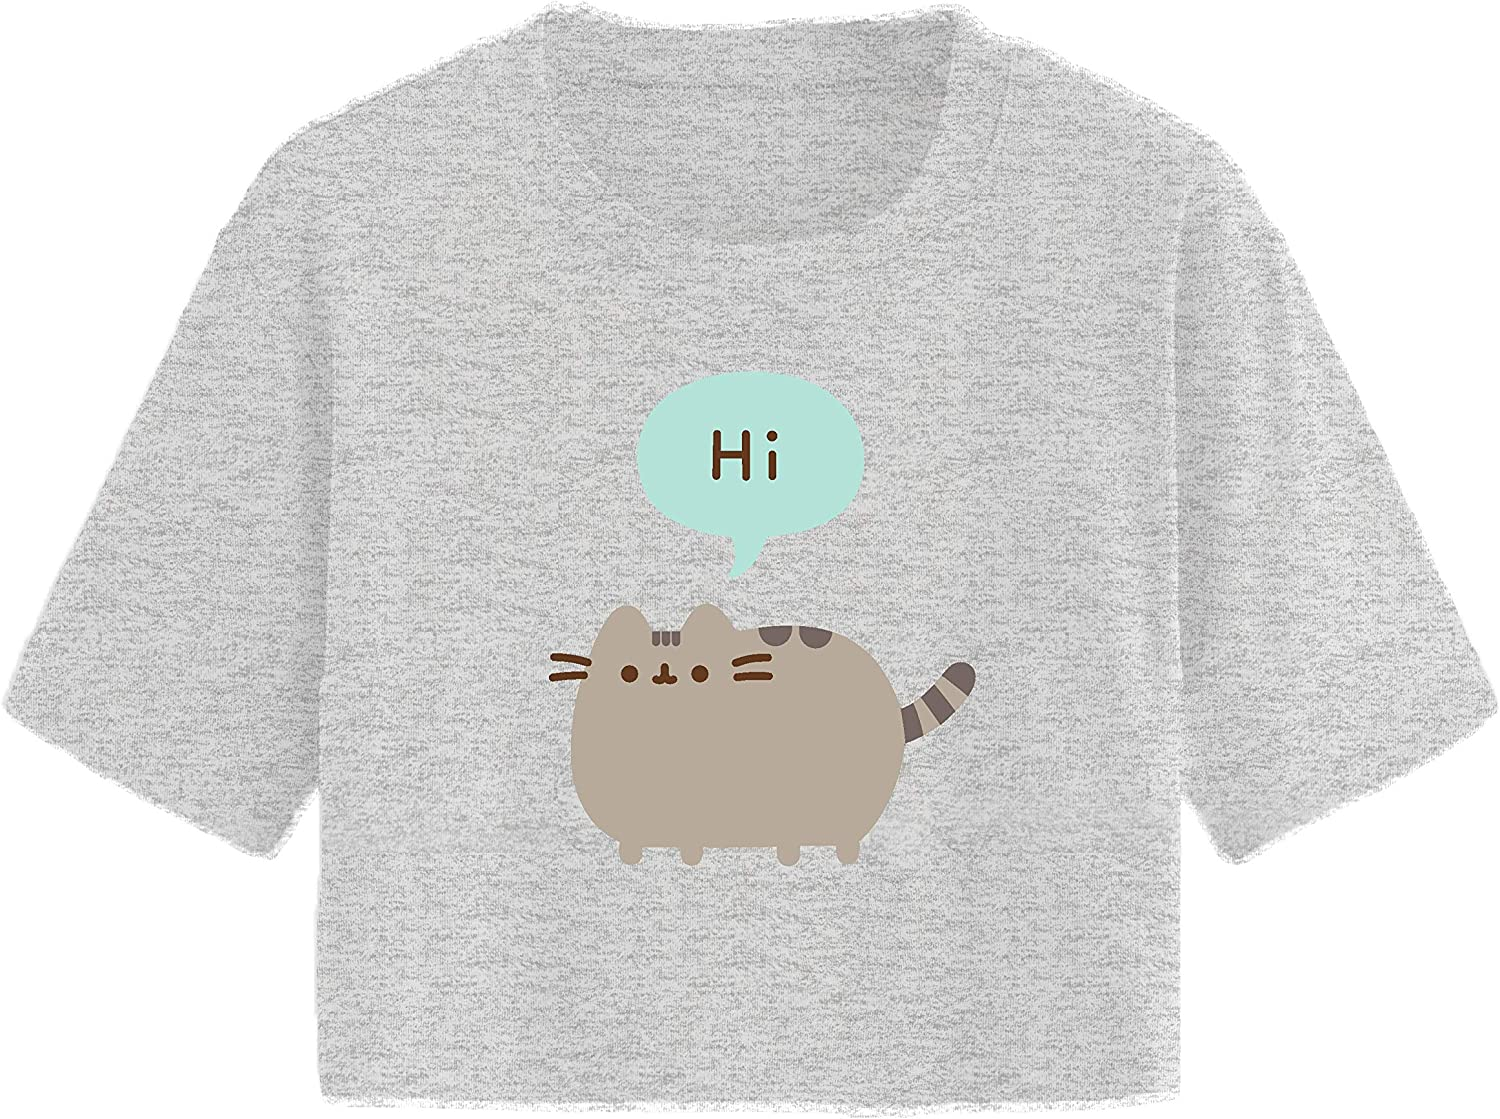 Pusheen Ladies The Cat Shirt The Cat Vintage Juniors Cropped Top T-Shirt